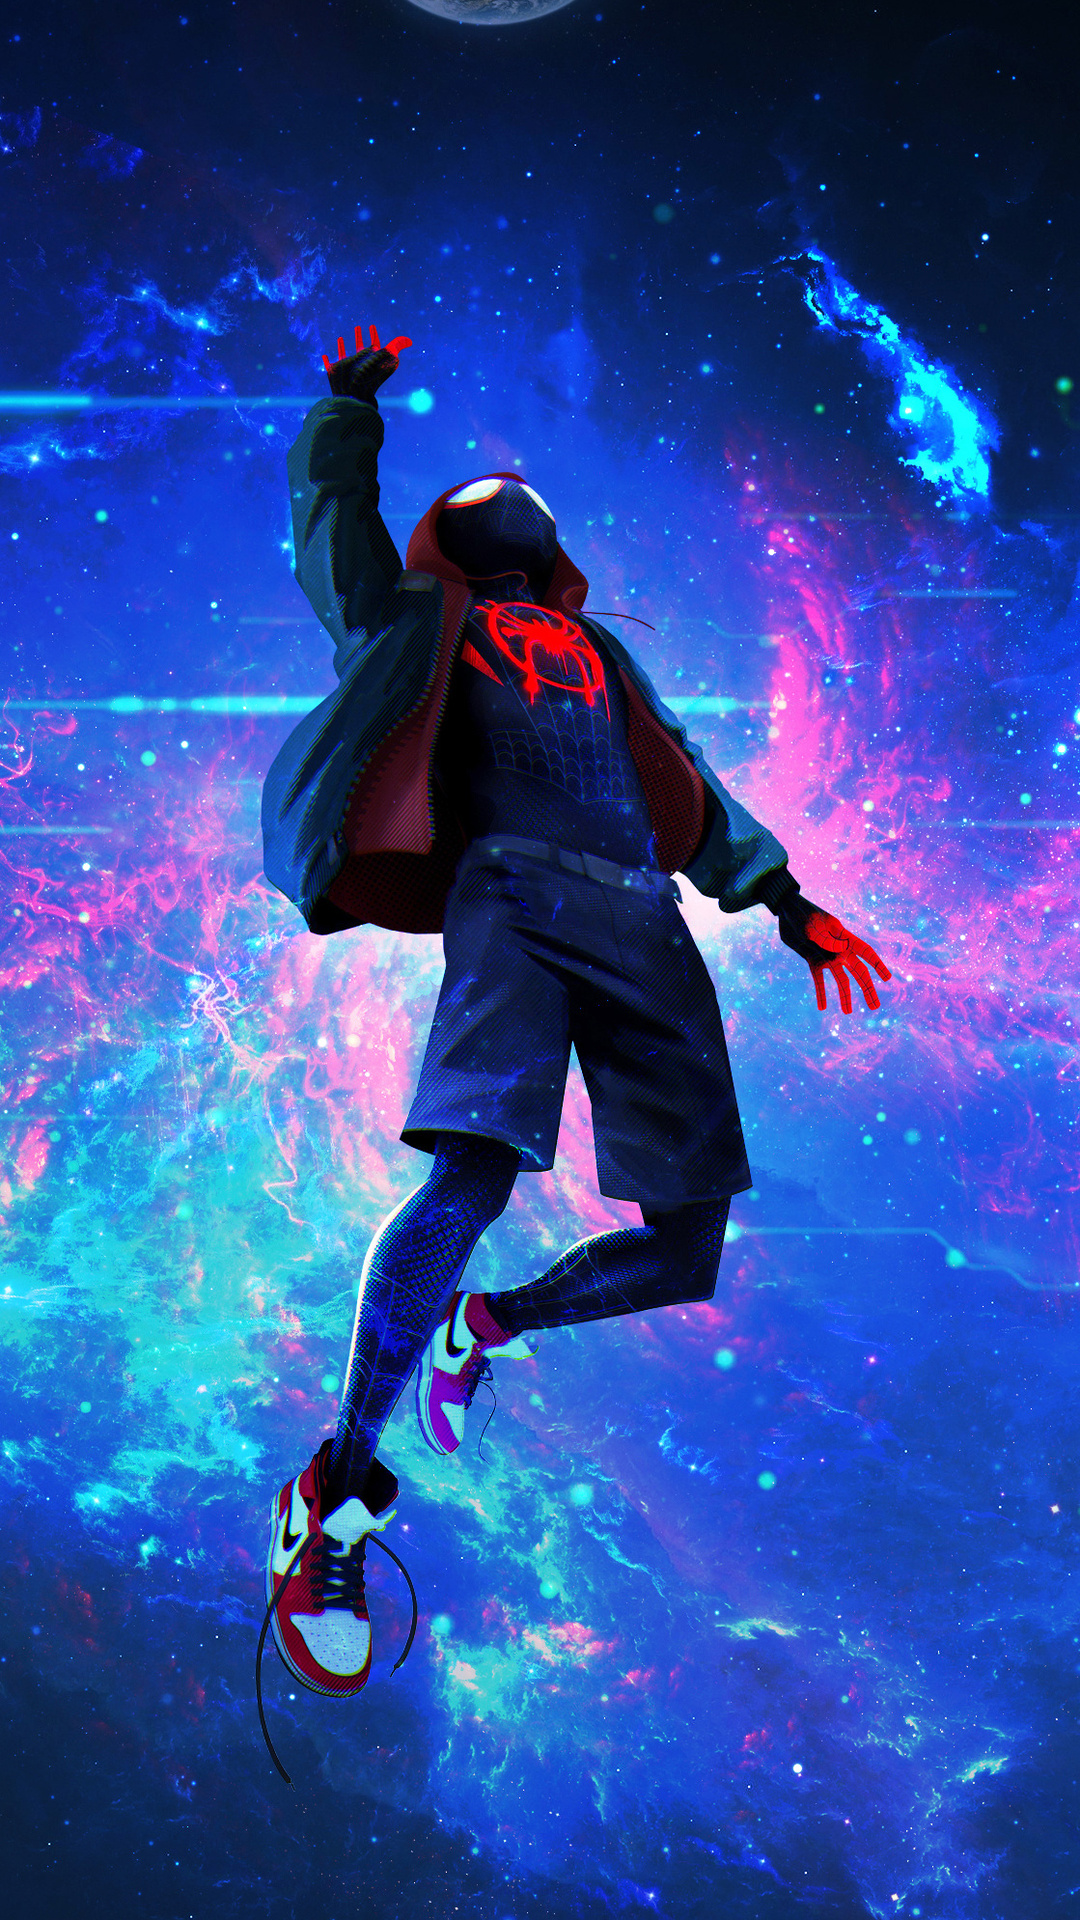 1080x1920 Spiderman Miles Lost In Space 4k Iphone 7,6s,6 ...